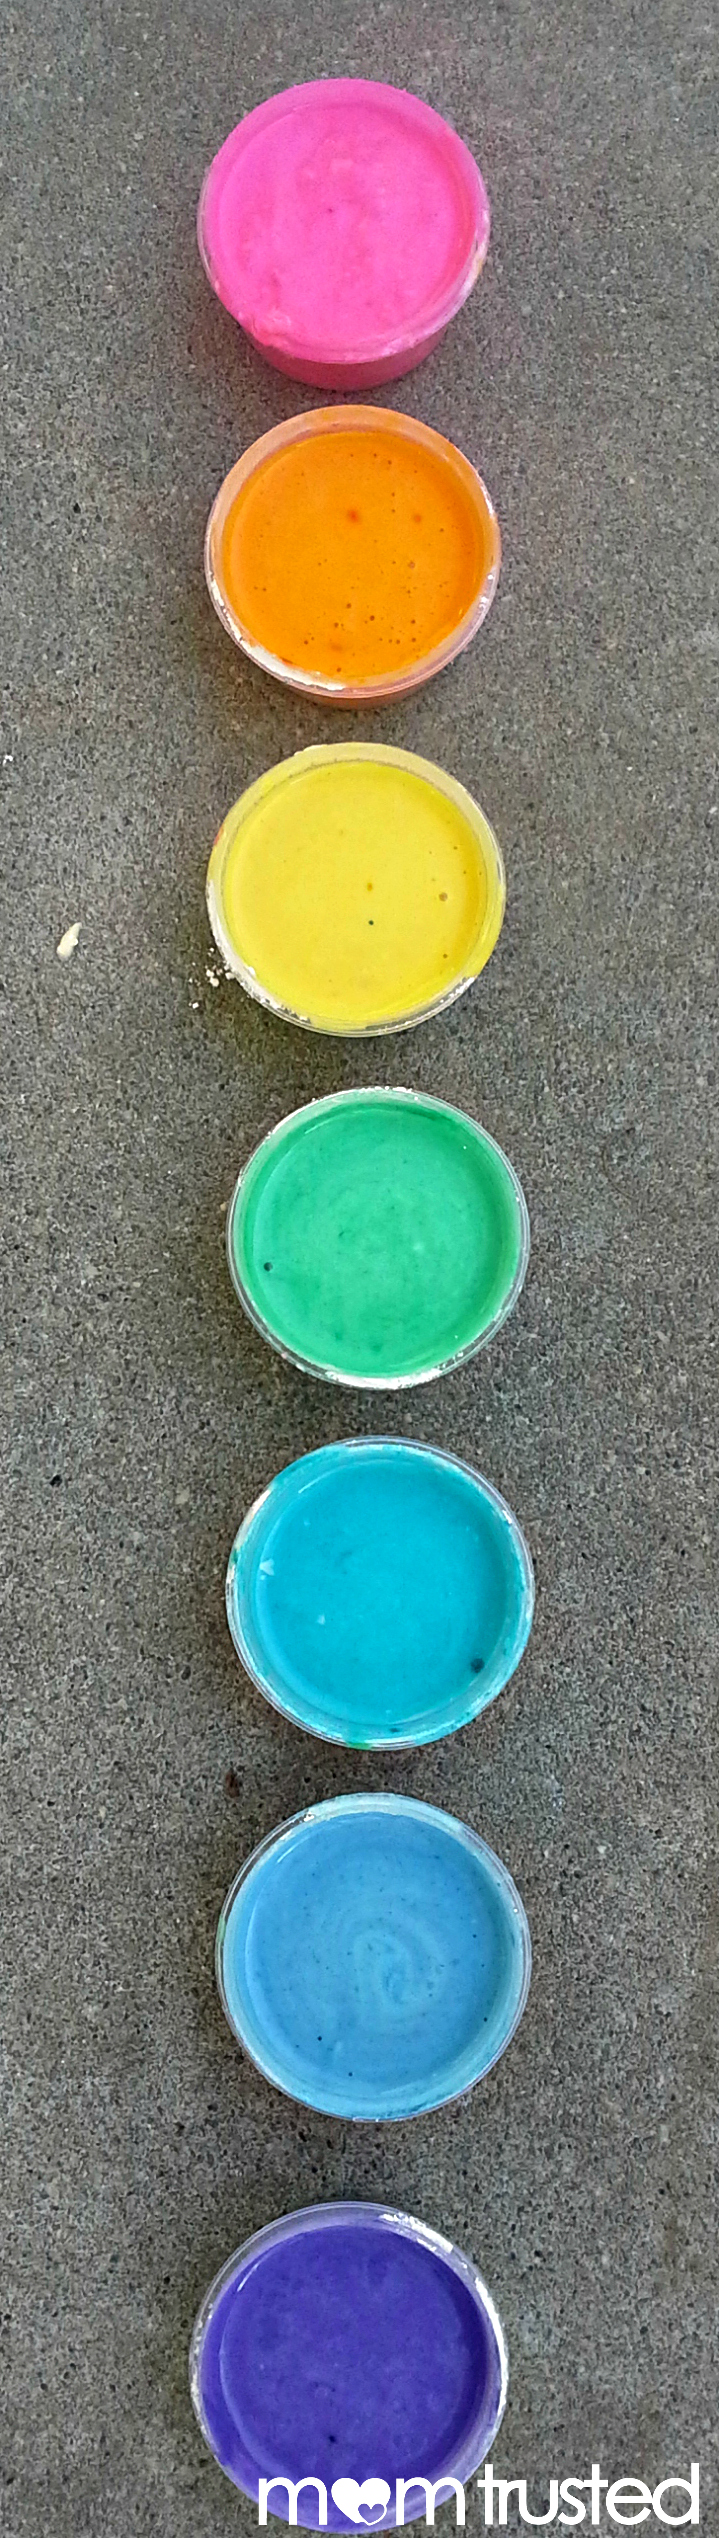 Homemade Sidewalk Paint flour paints momtrusted